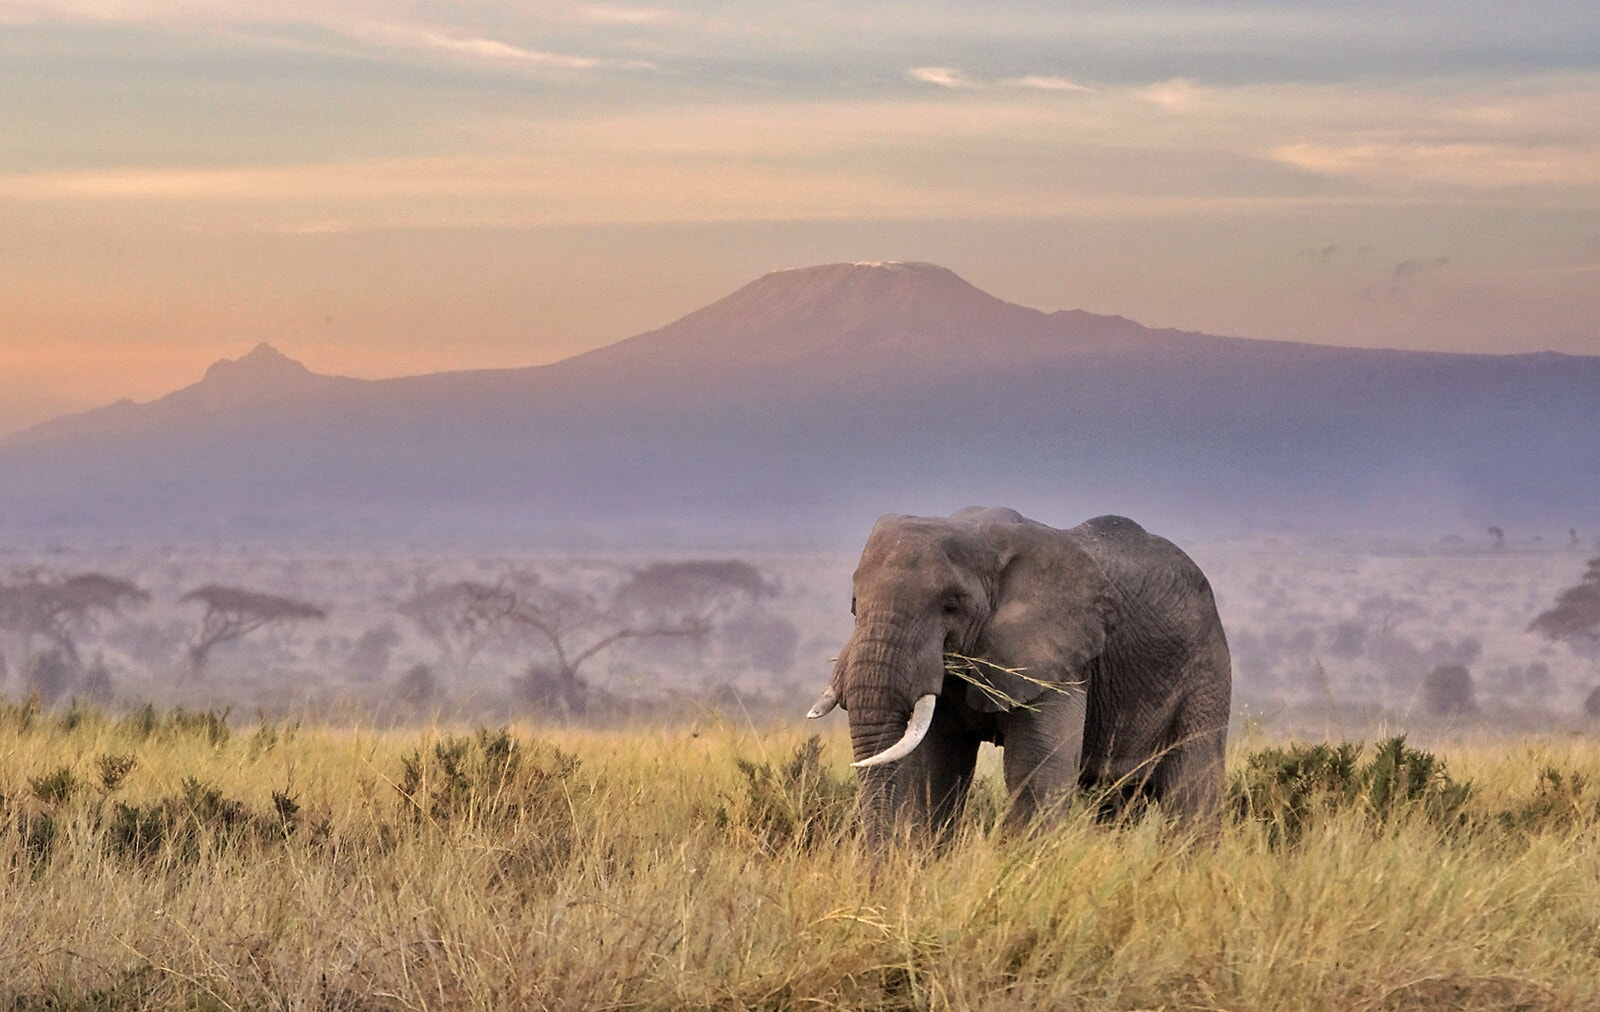 Photograph Breakfast with the elefant by Gerhard Bruckner on 500px